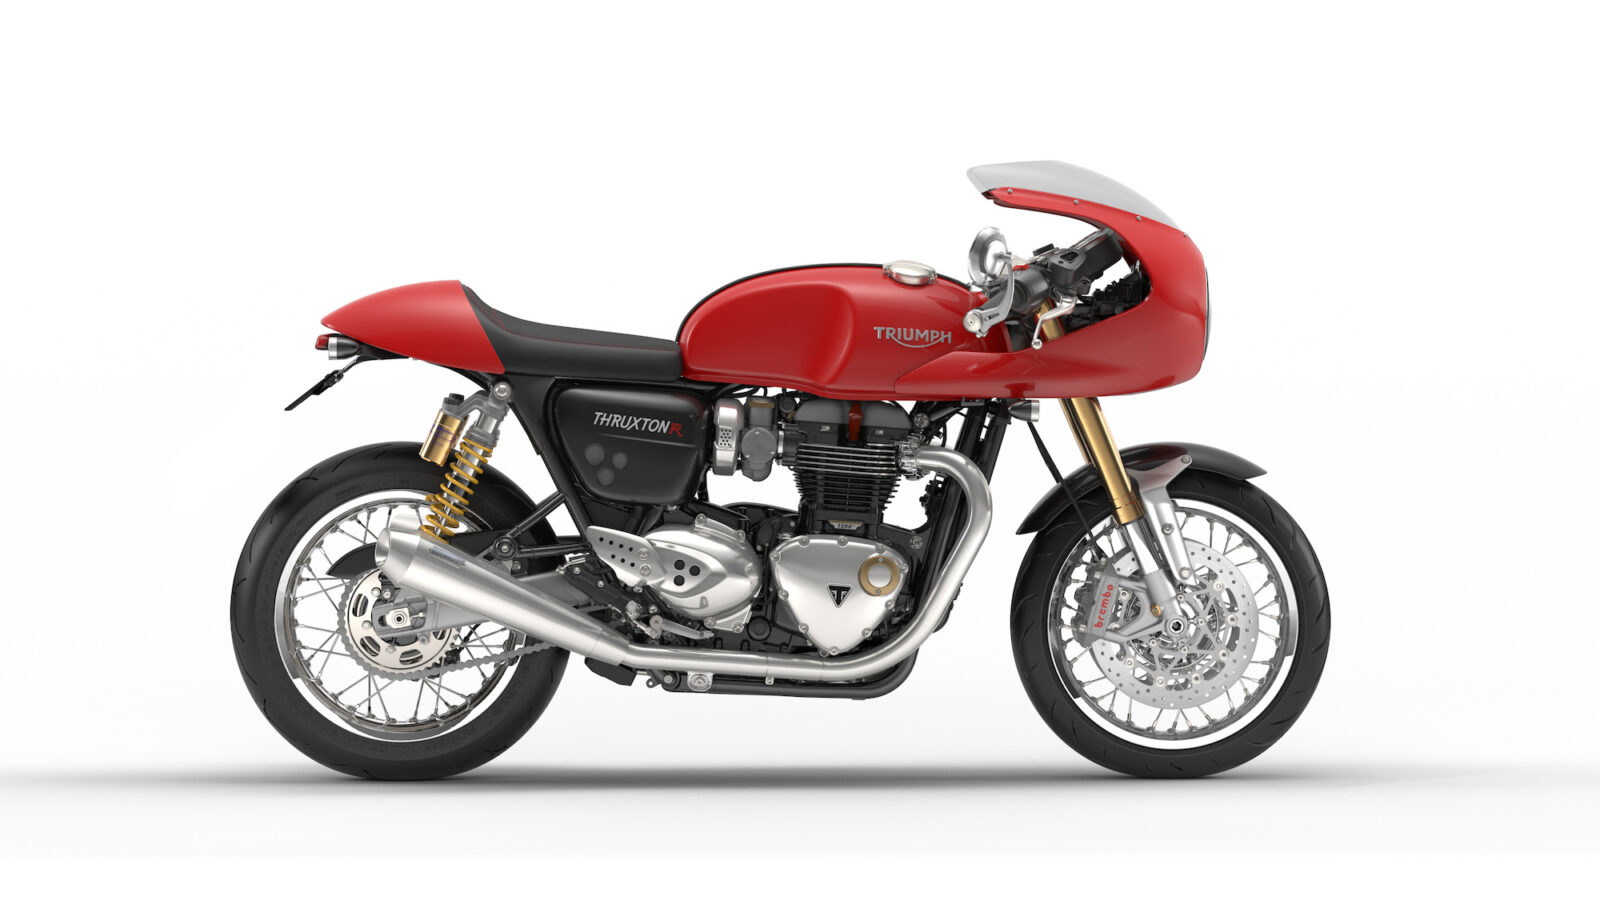 Triumph Thruxton R 1600x900 - The New Triumph Thruxton R